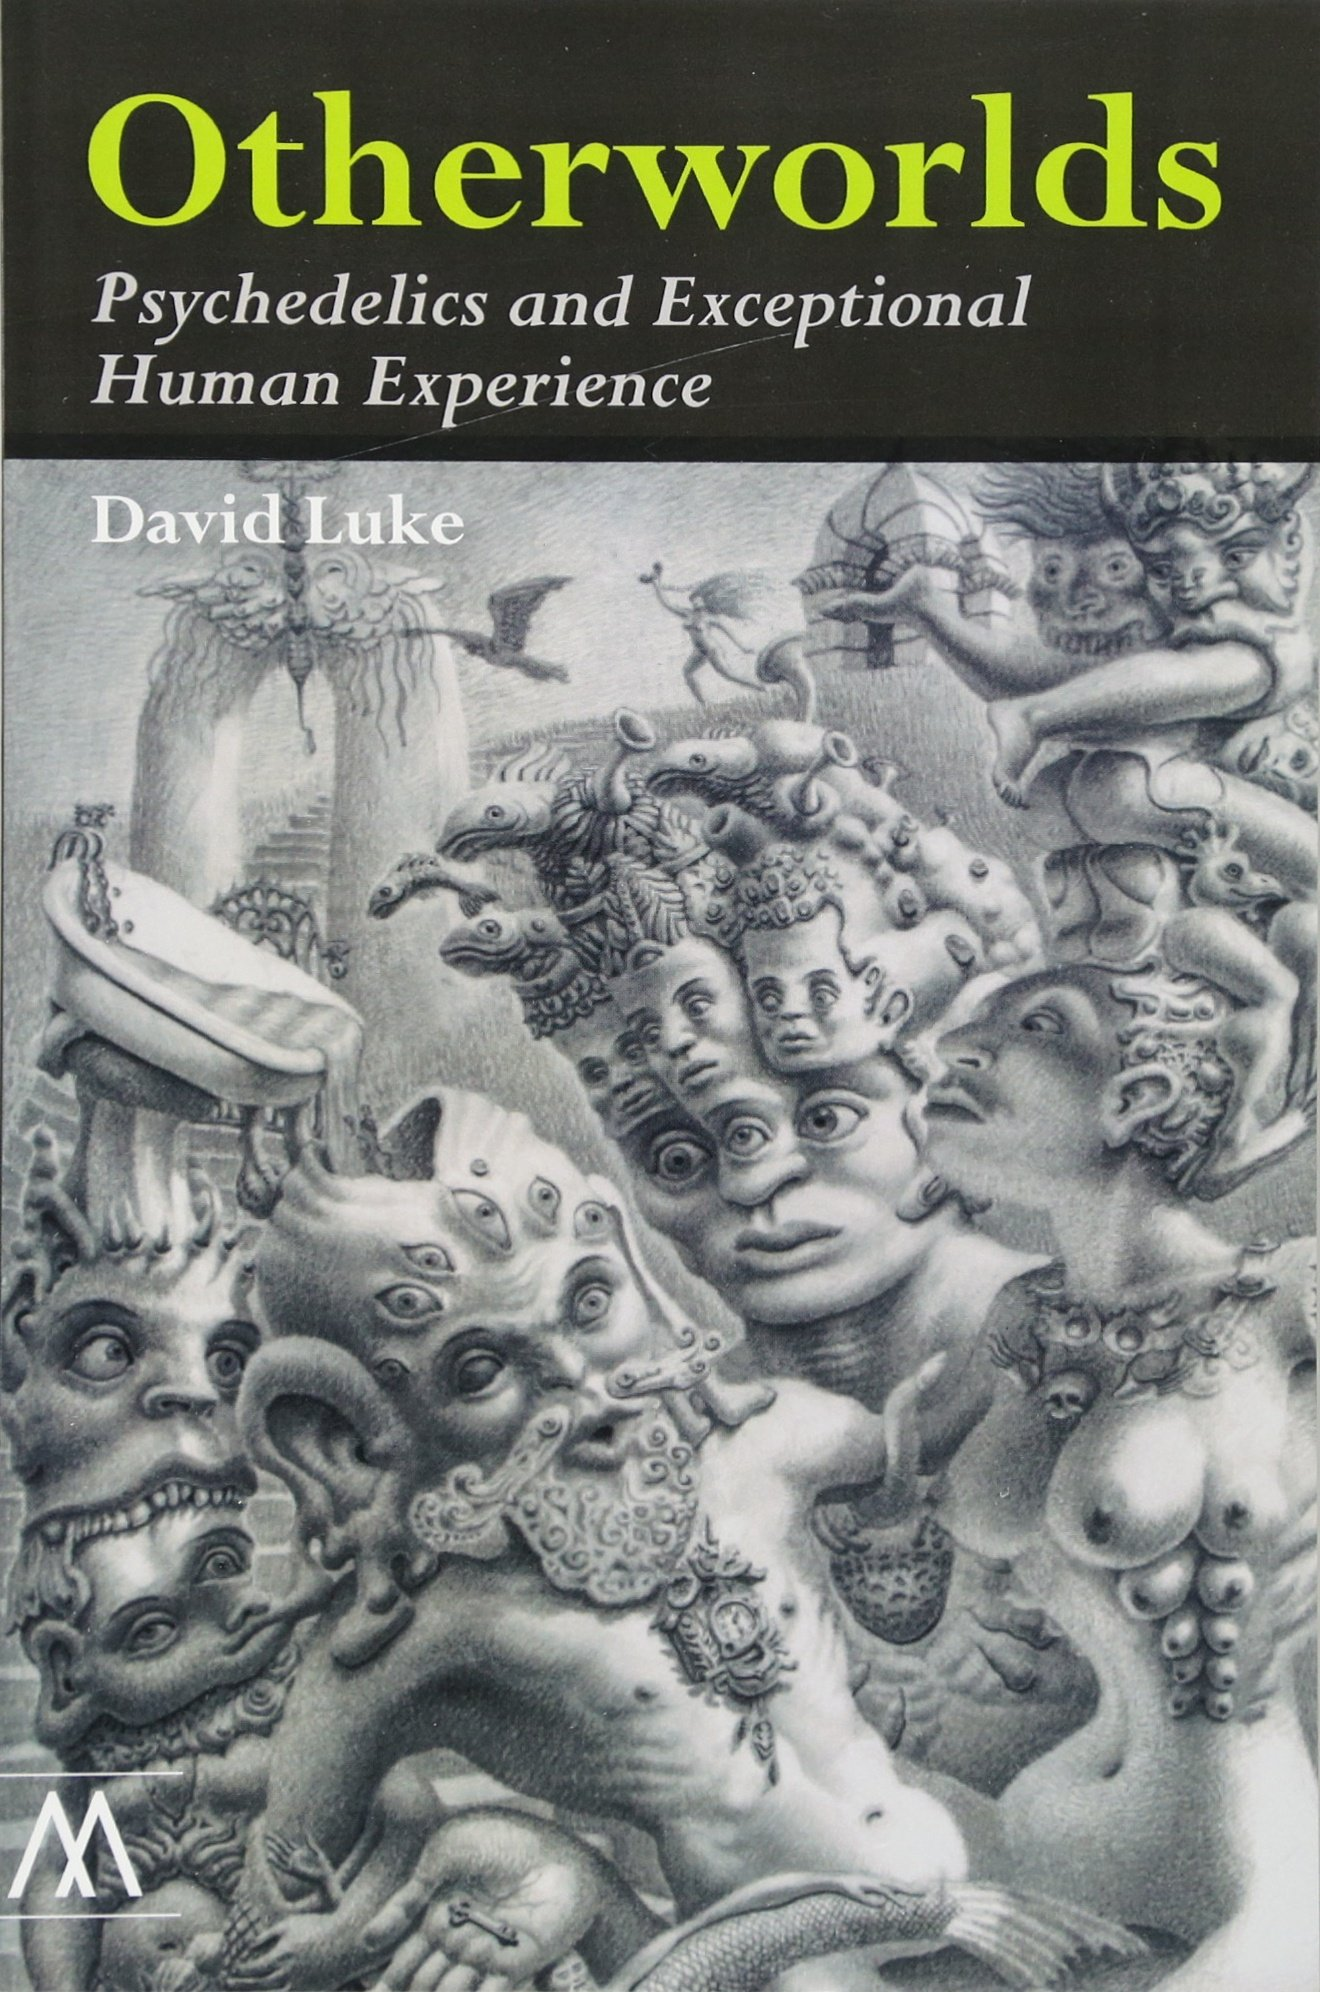 Image result for David Luke, Otherworlds: Psychedelics and Exceptional Human Experience,